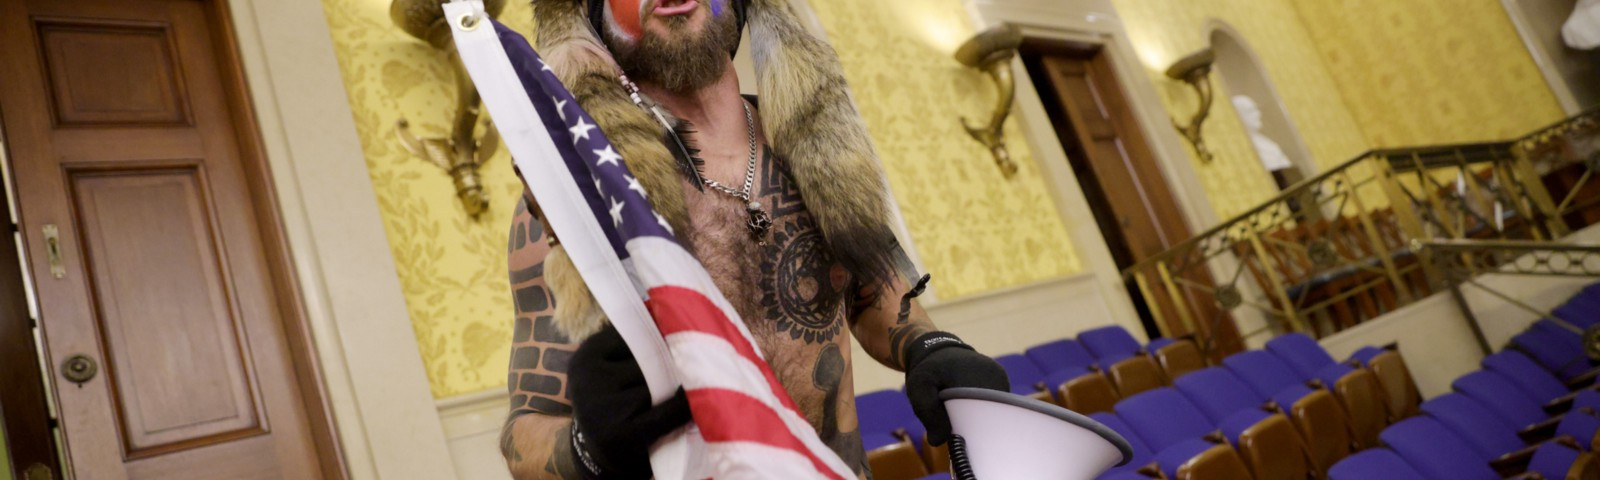 "The ""Qanon Shaman"" wearing fur and a horned hat, holding a US flag and bullhorn in the Capitol building."